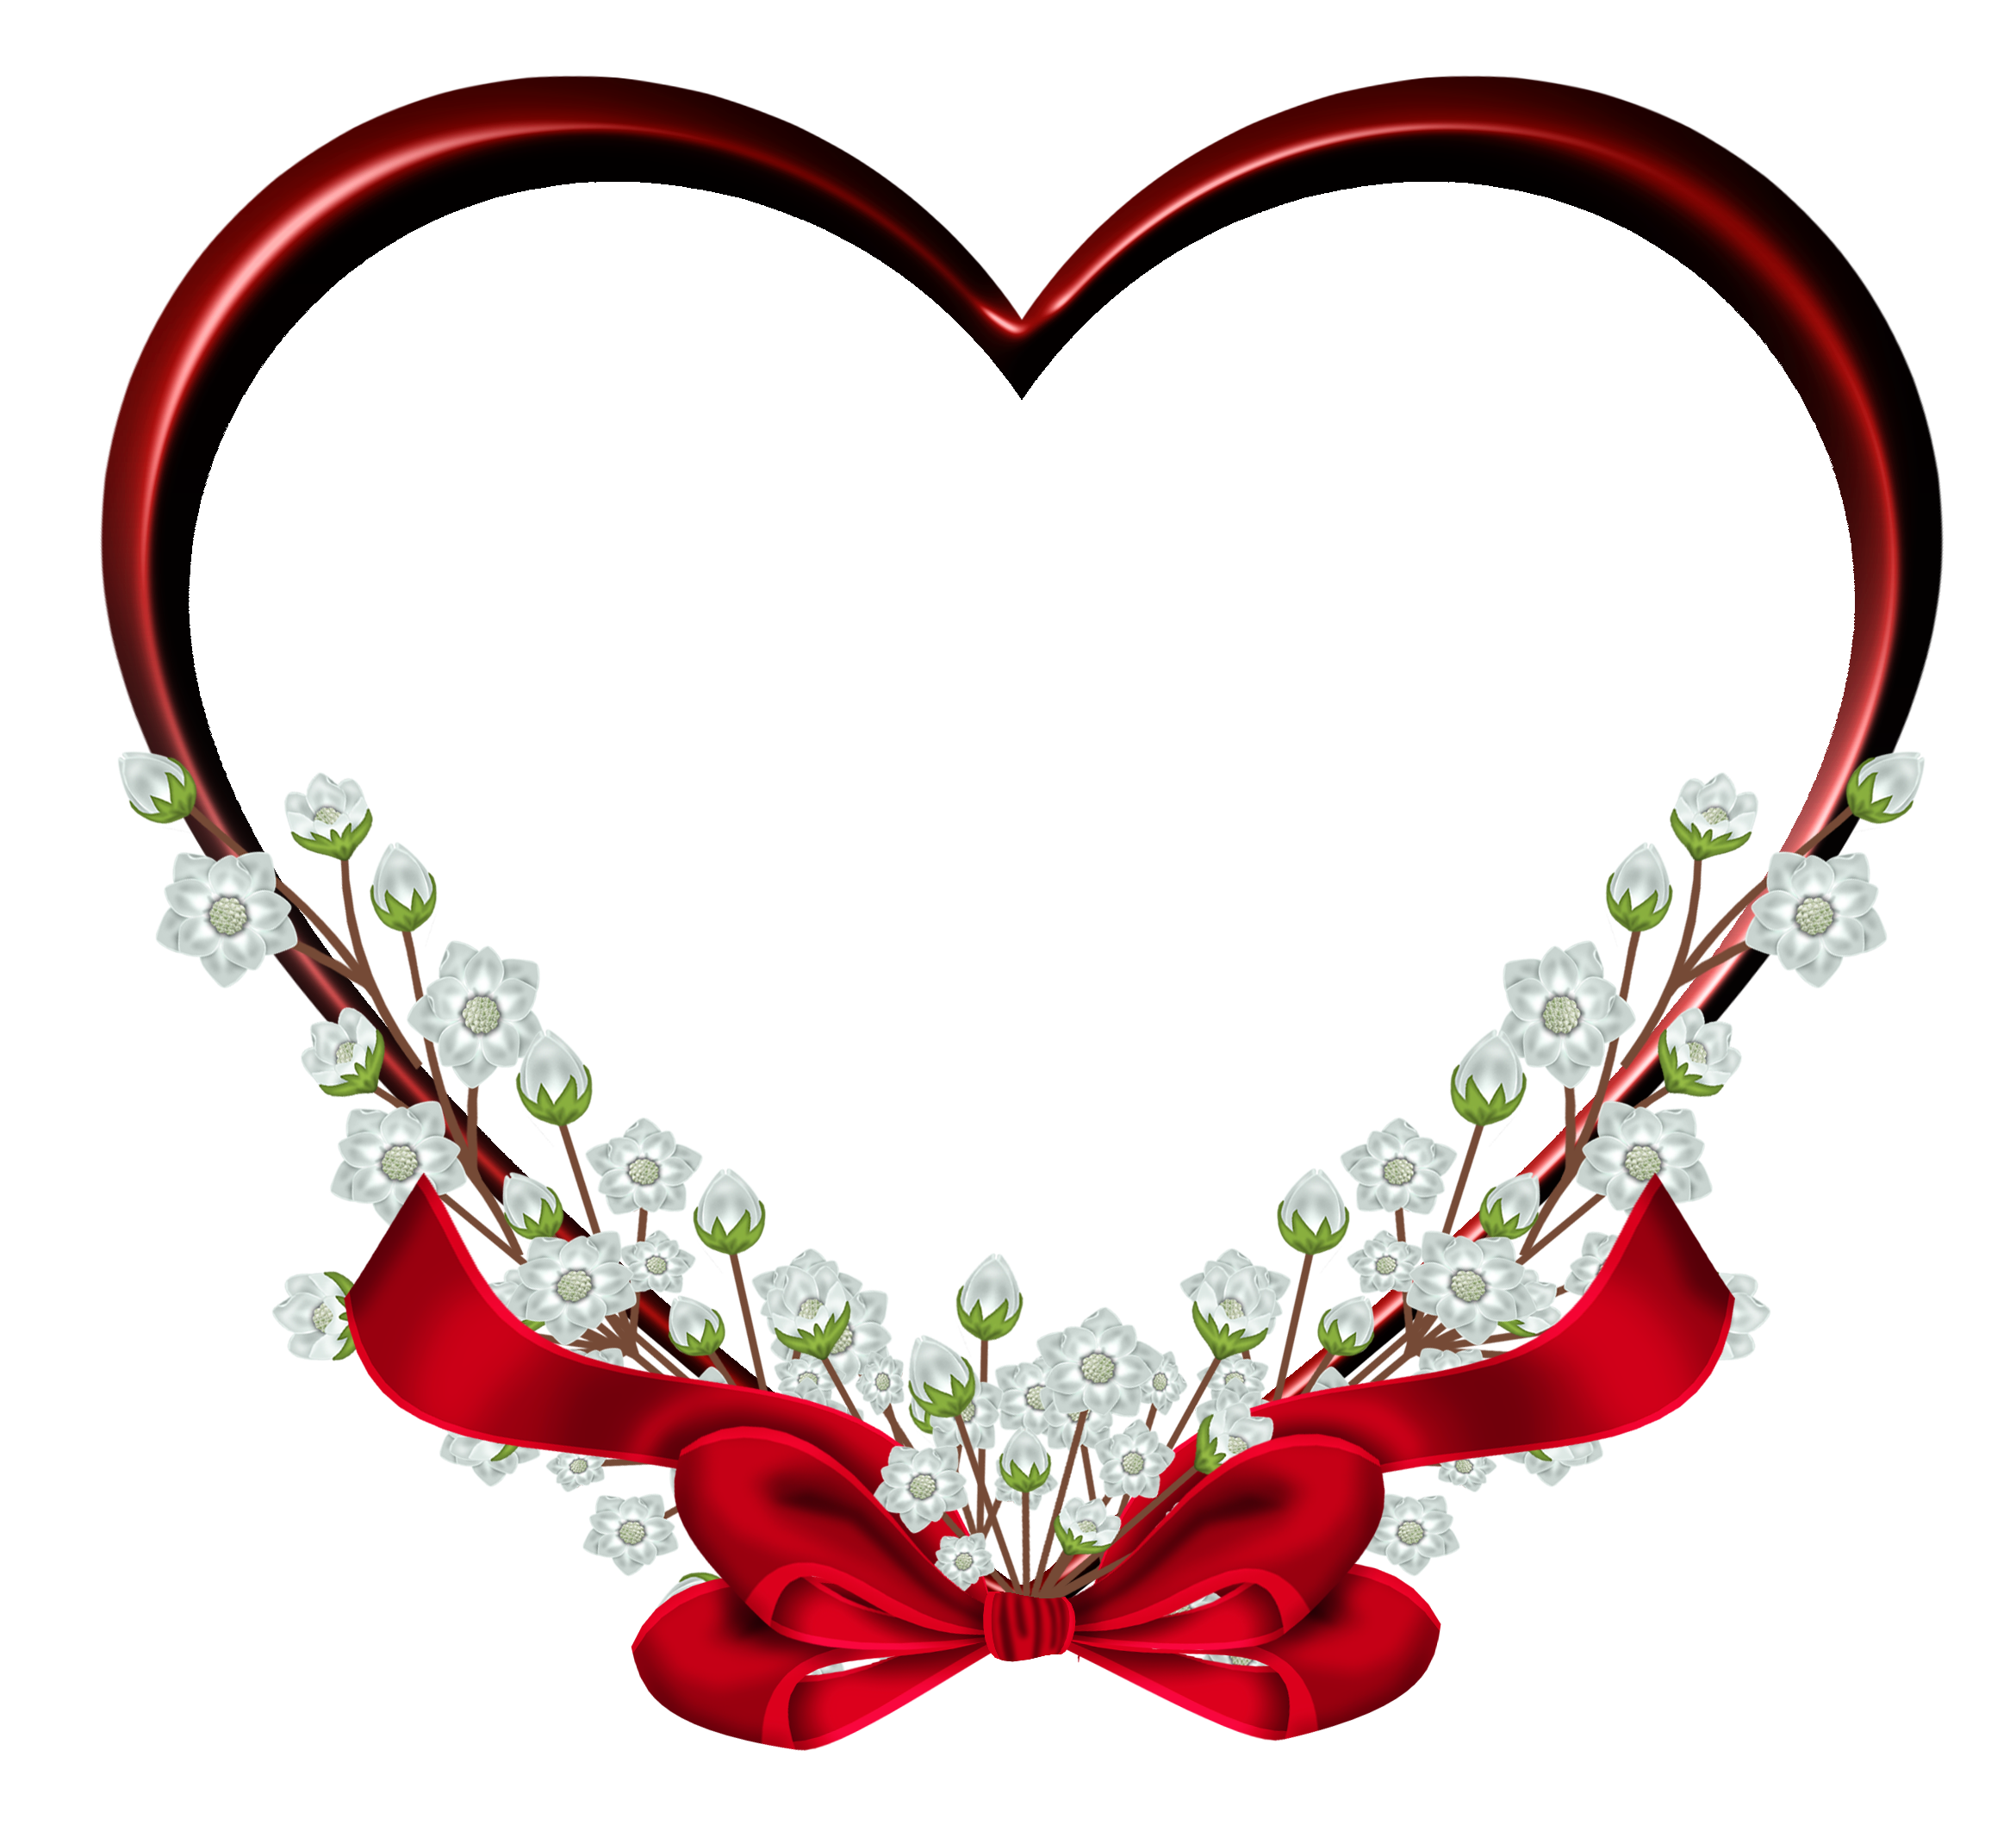 Transparent red heart frame. Clipart hearts christmas